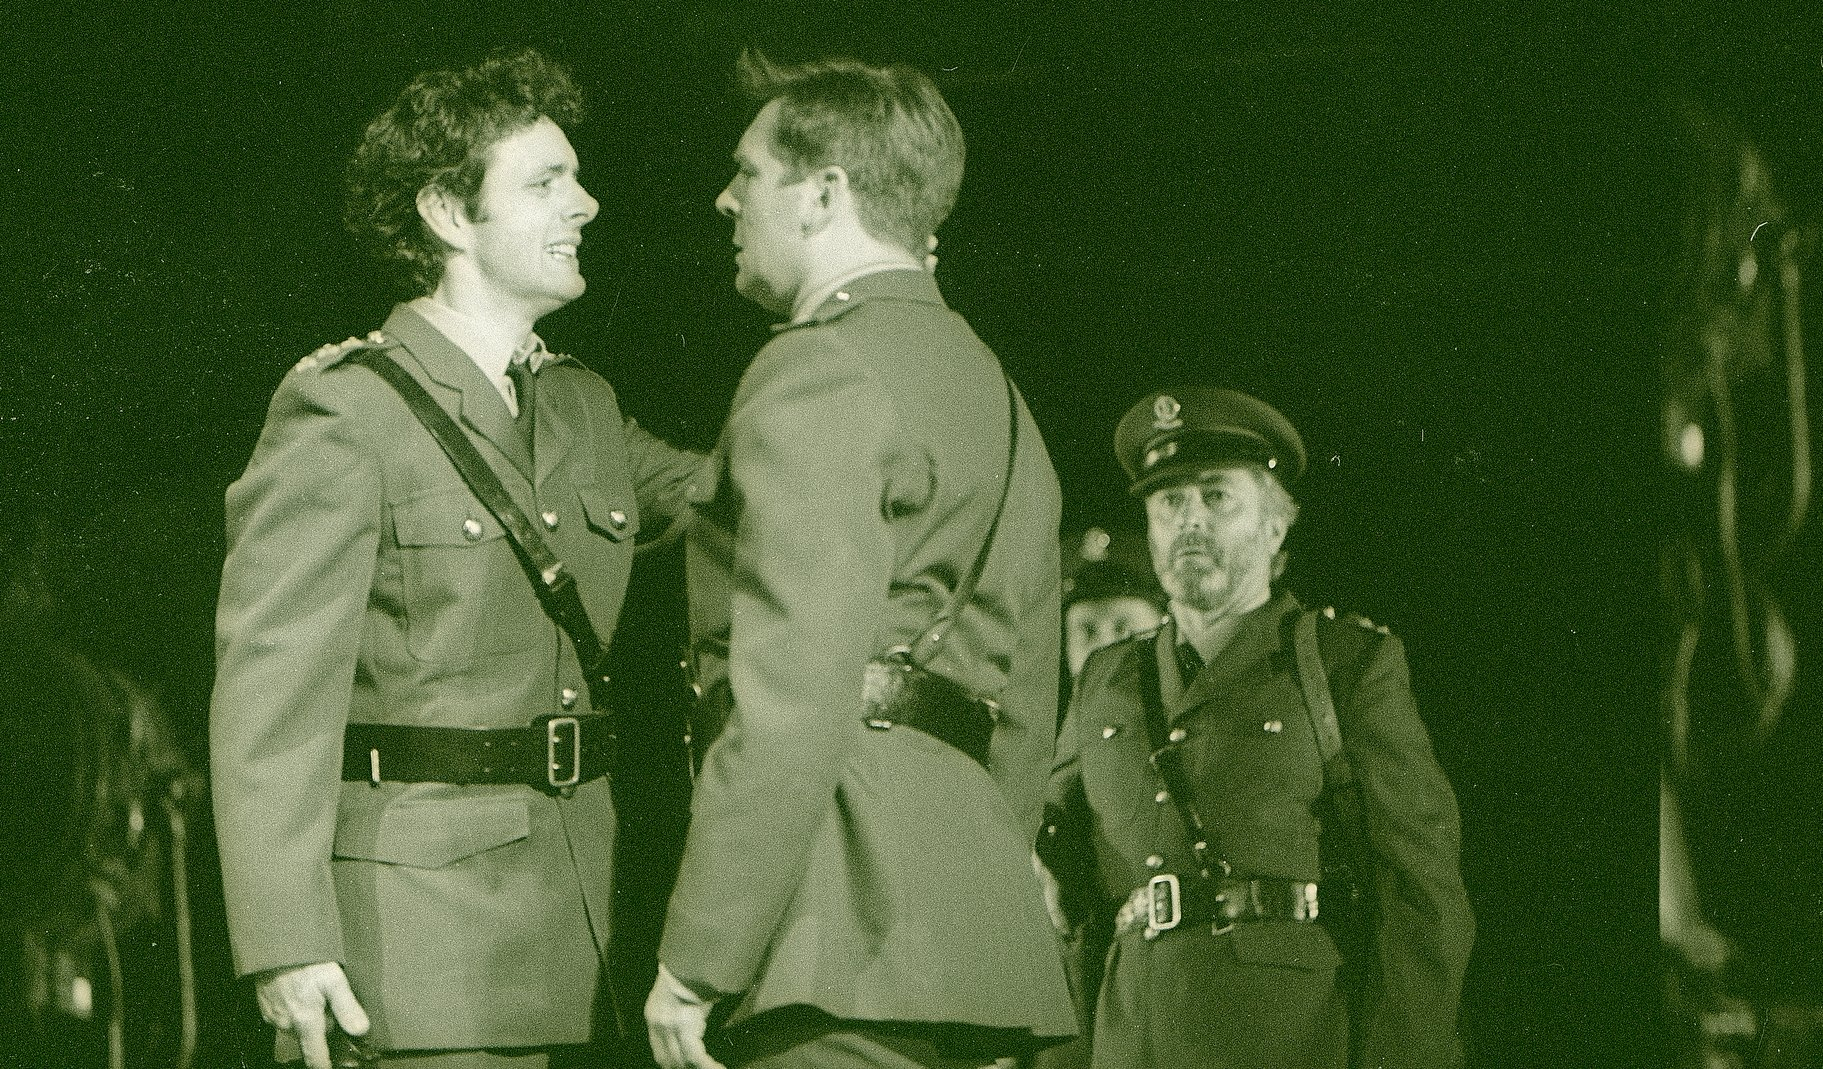 Henry confronts the traitors, all dressed in military uniform, in the 1997 production of Henry V